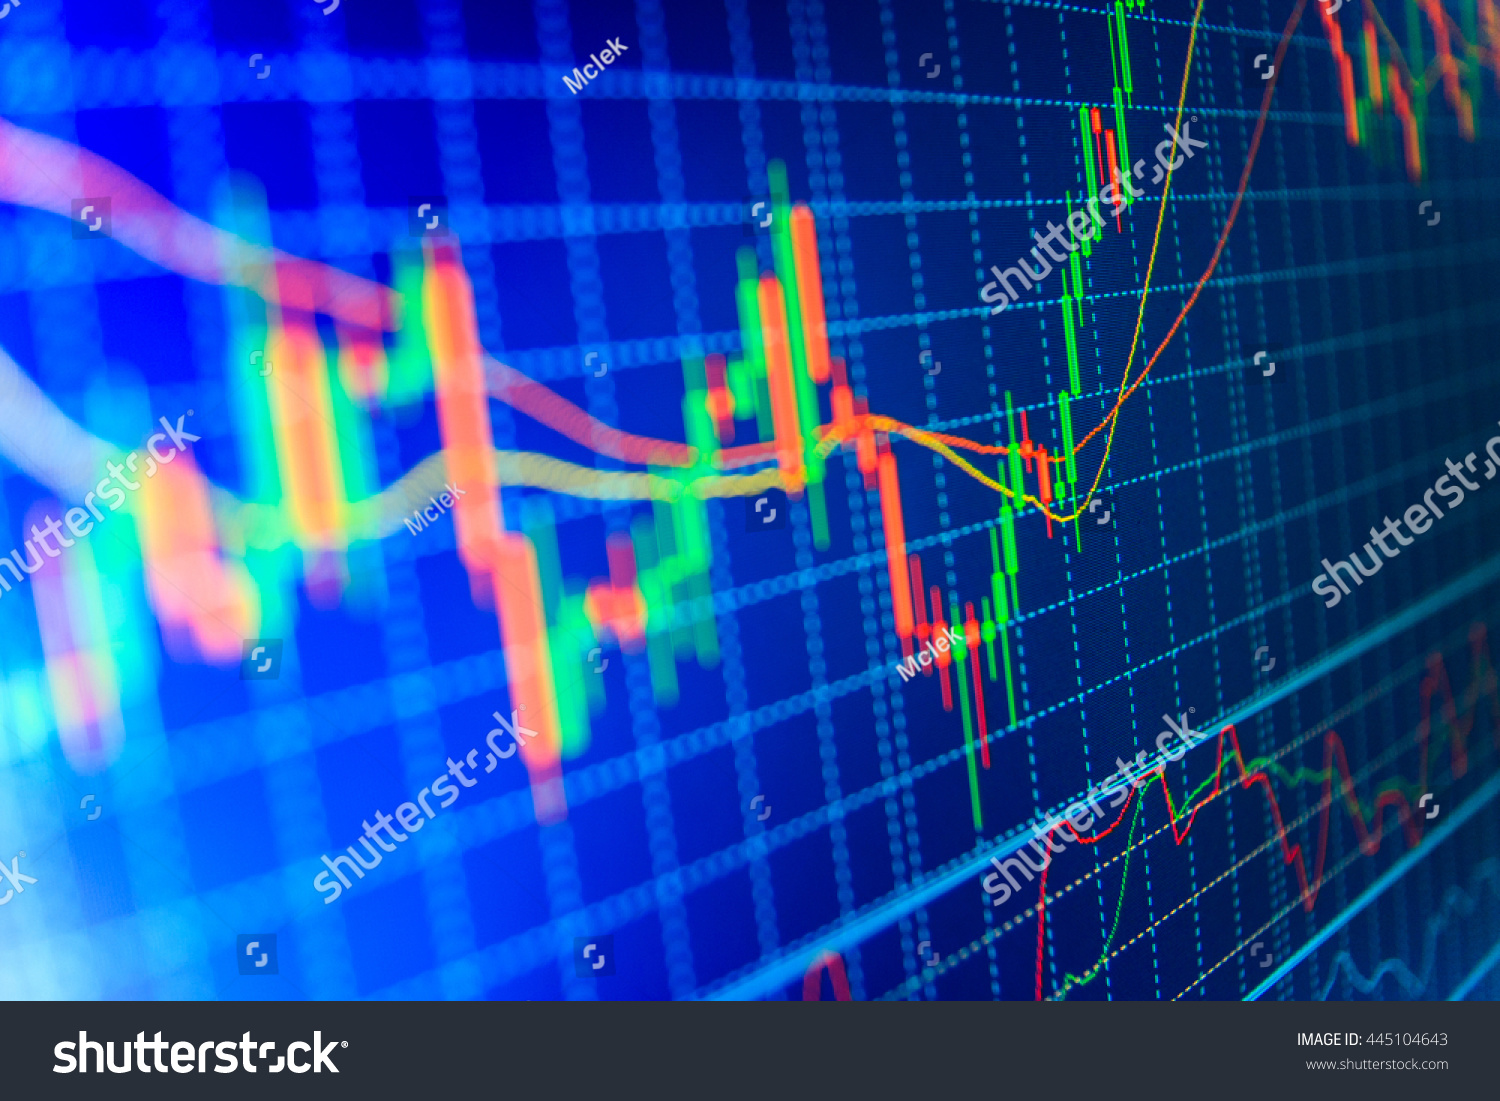 Stock Market Quotes On Display Business Photo 445104643 – Stock Market Analysis